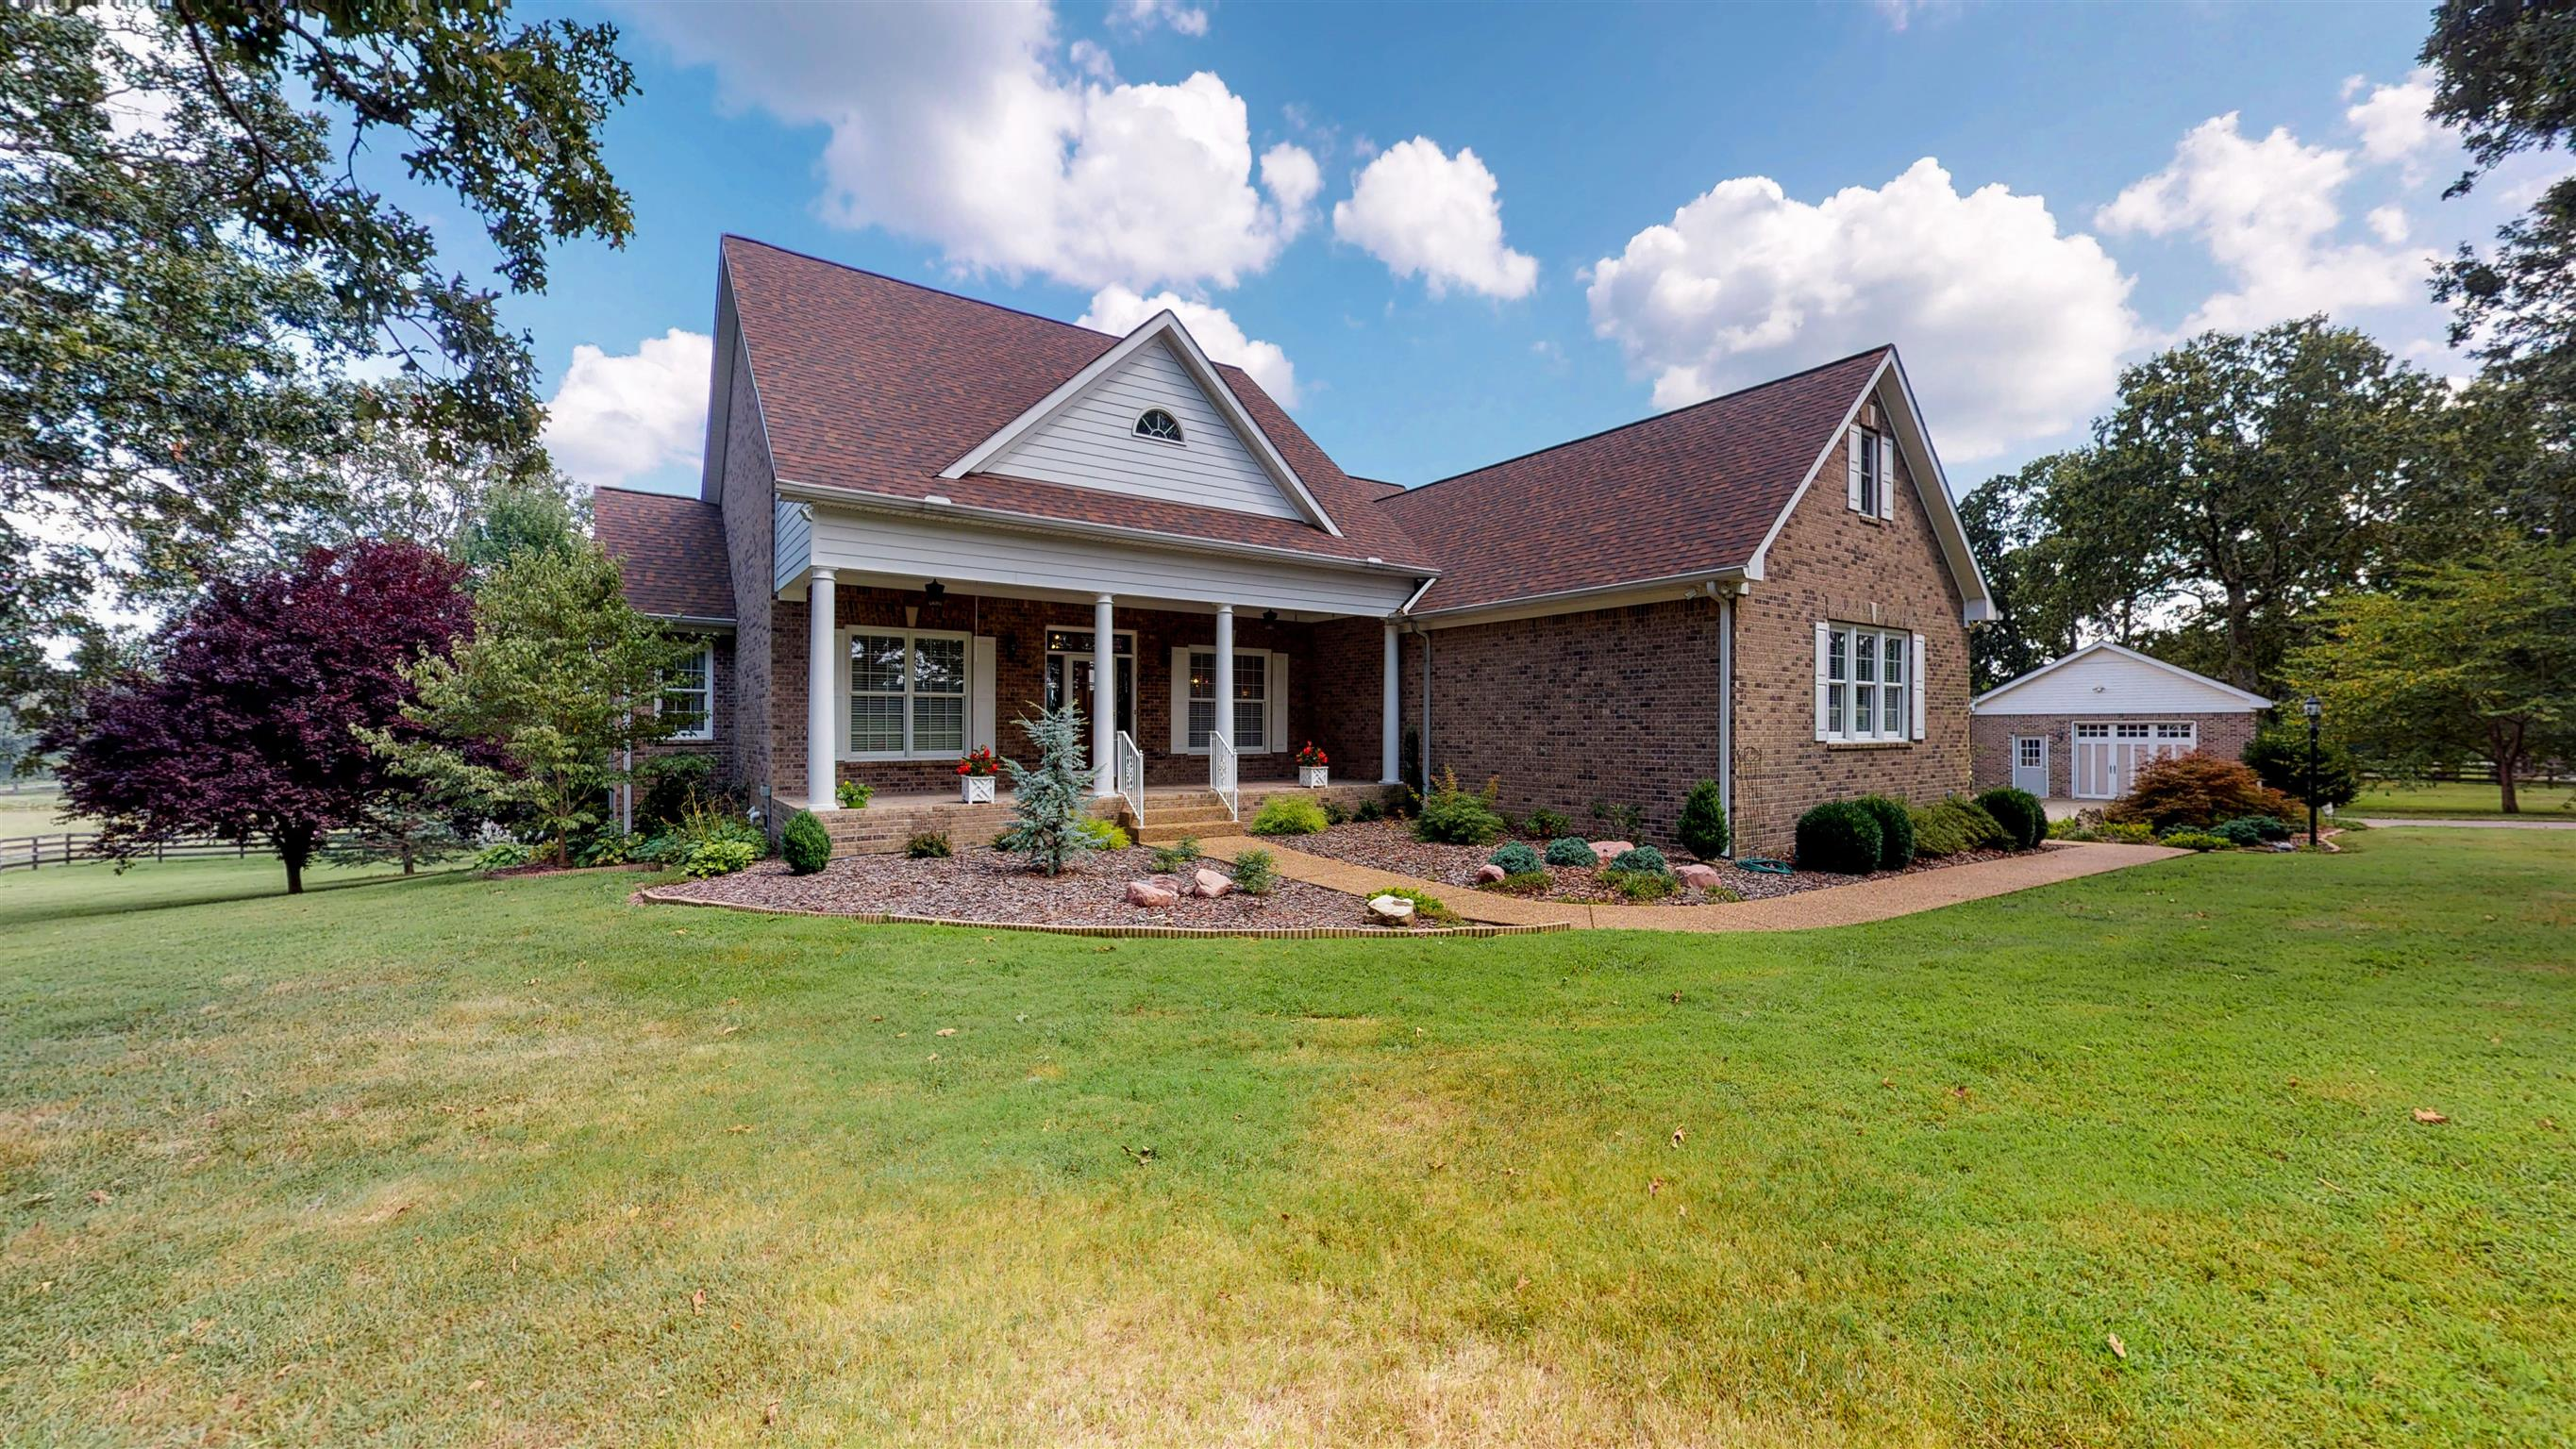 598 Hawkins Rd, White Bluff, TN 37187 - White Bluff, TN real estate listing